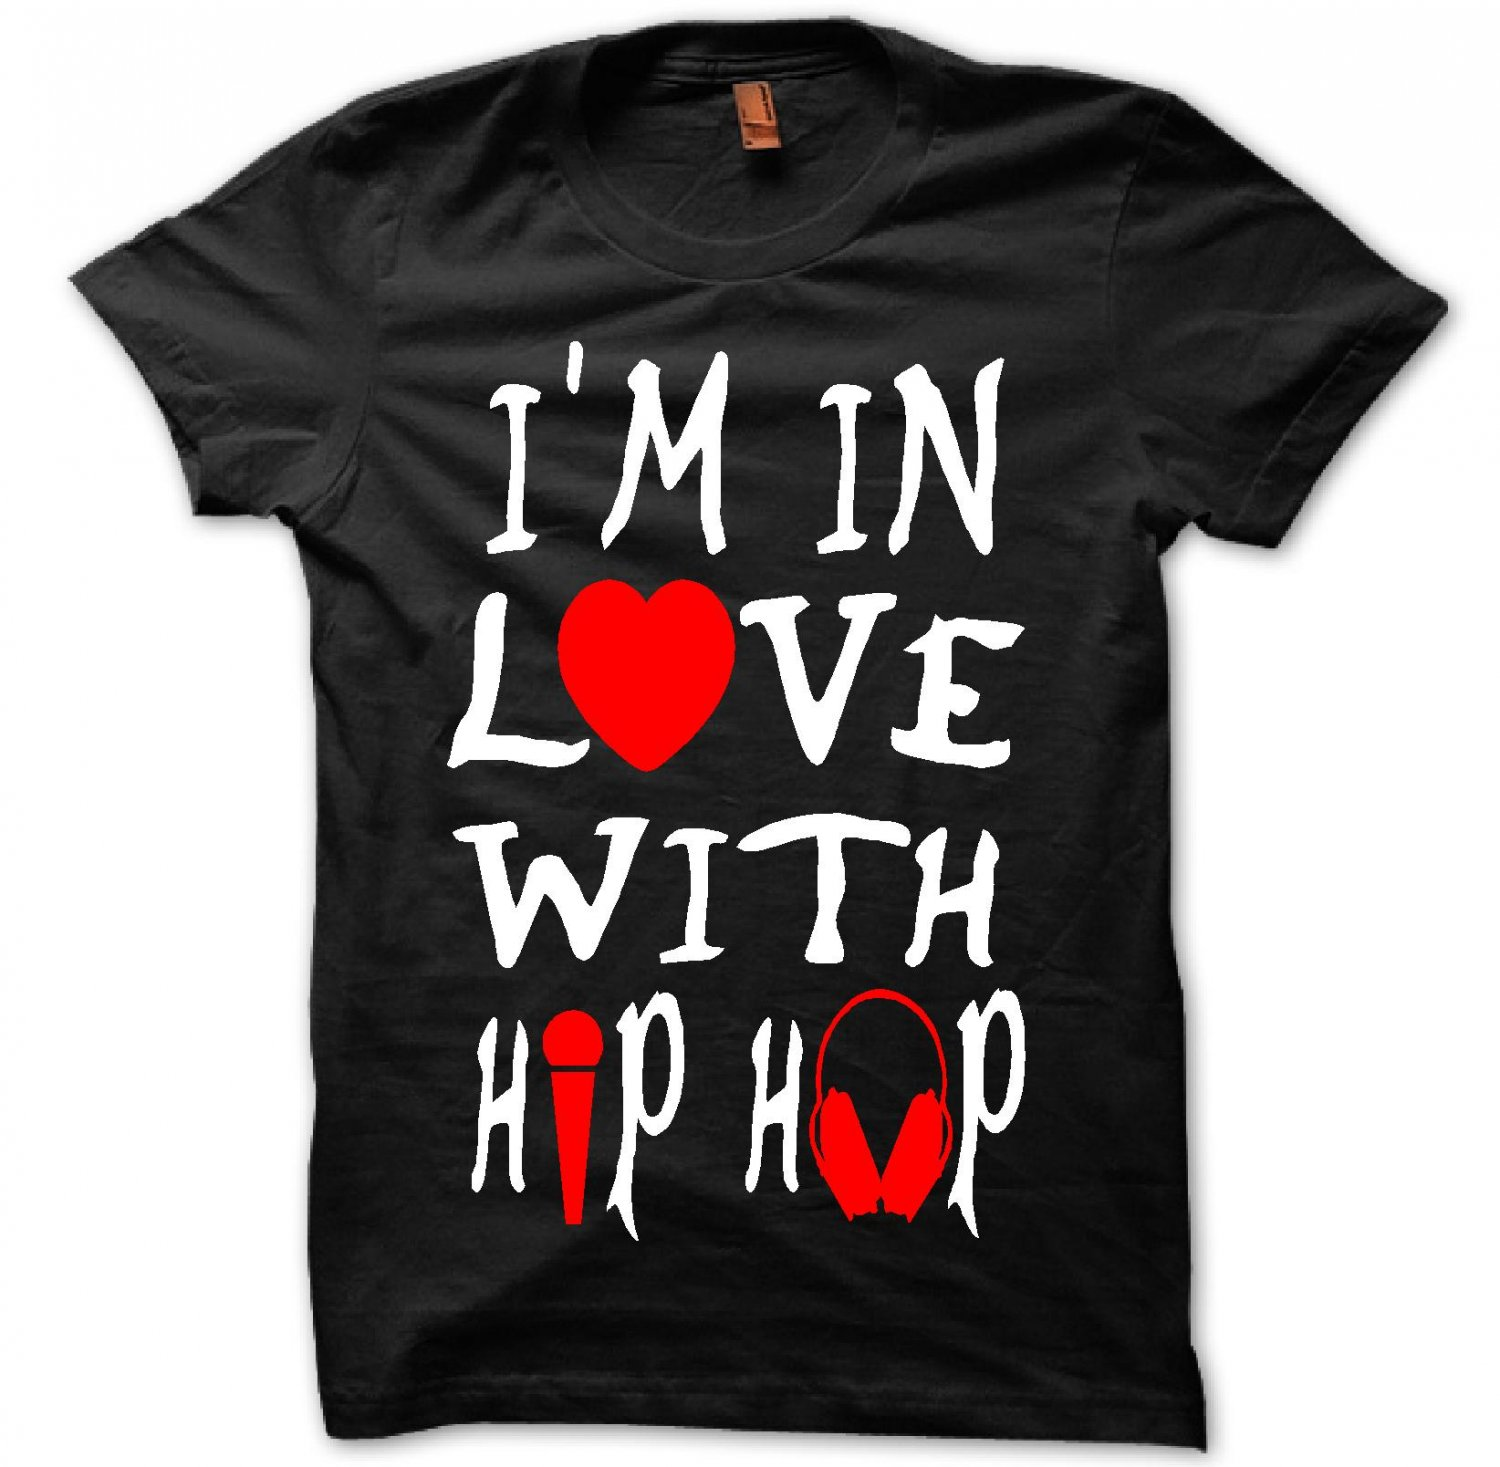 I'M IN LOVE WITH HIP HOP (Women Medium)